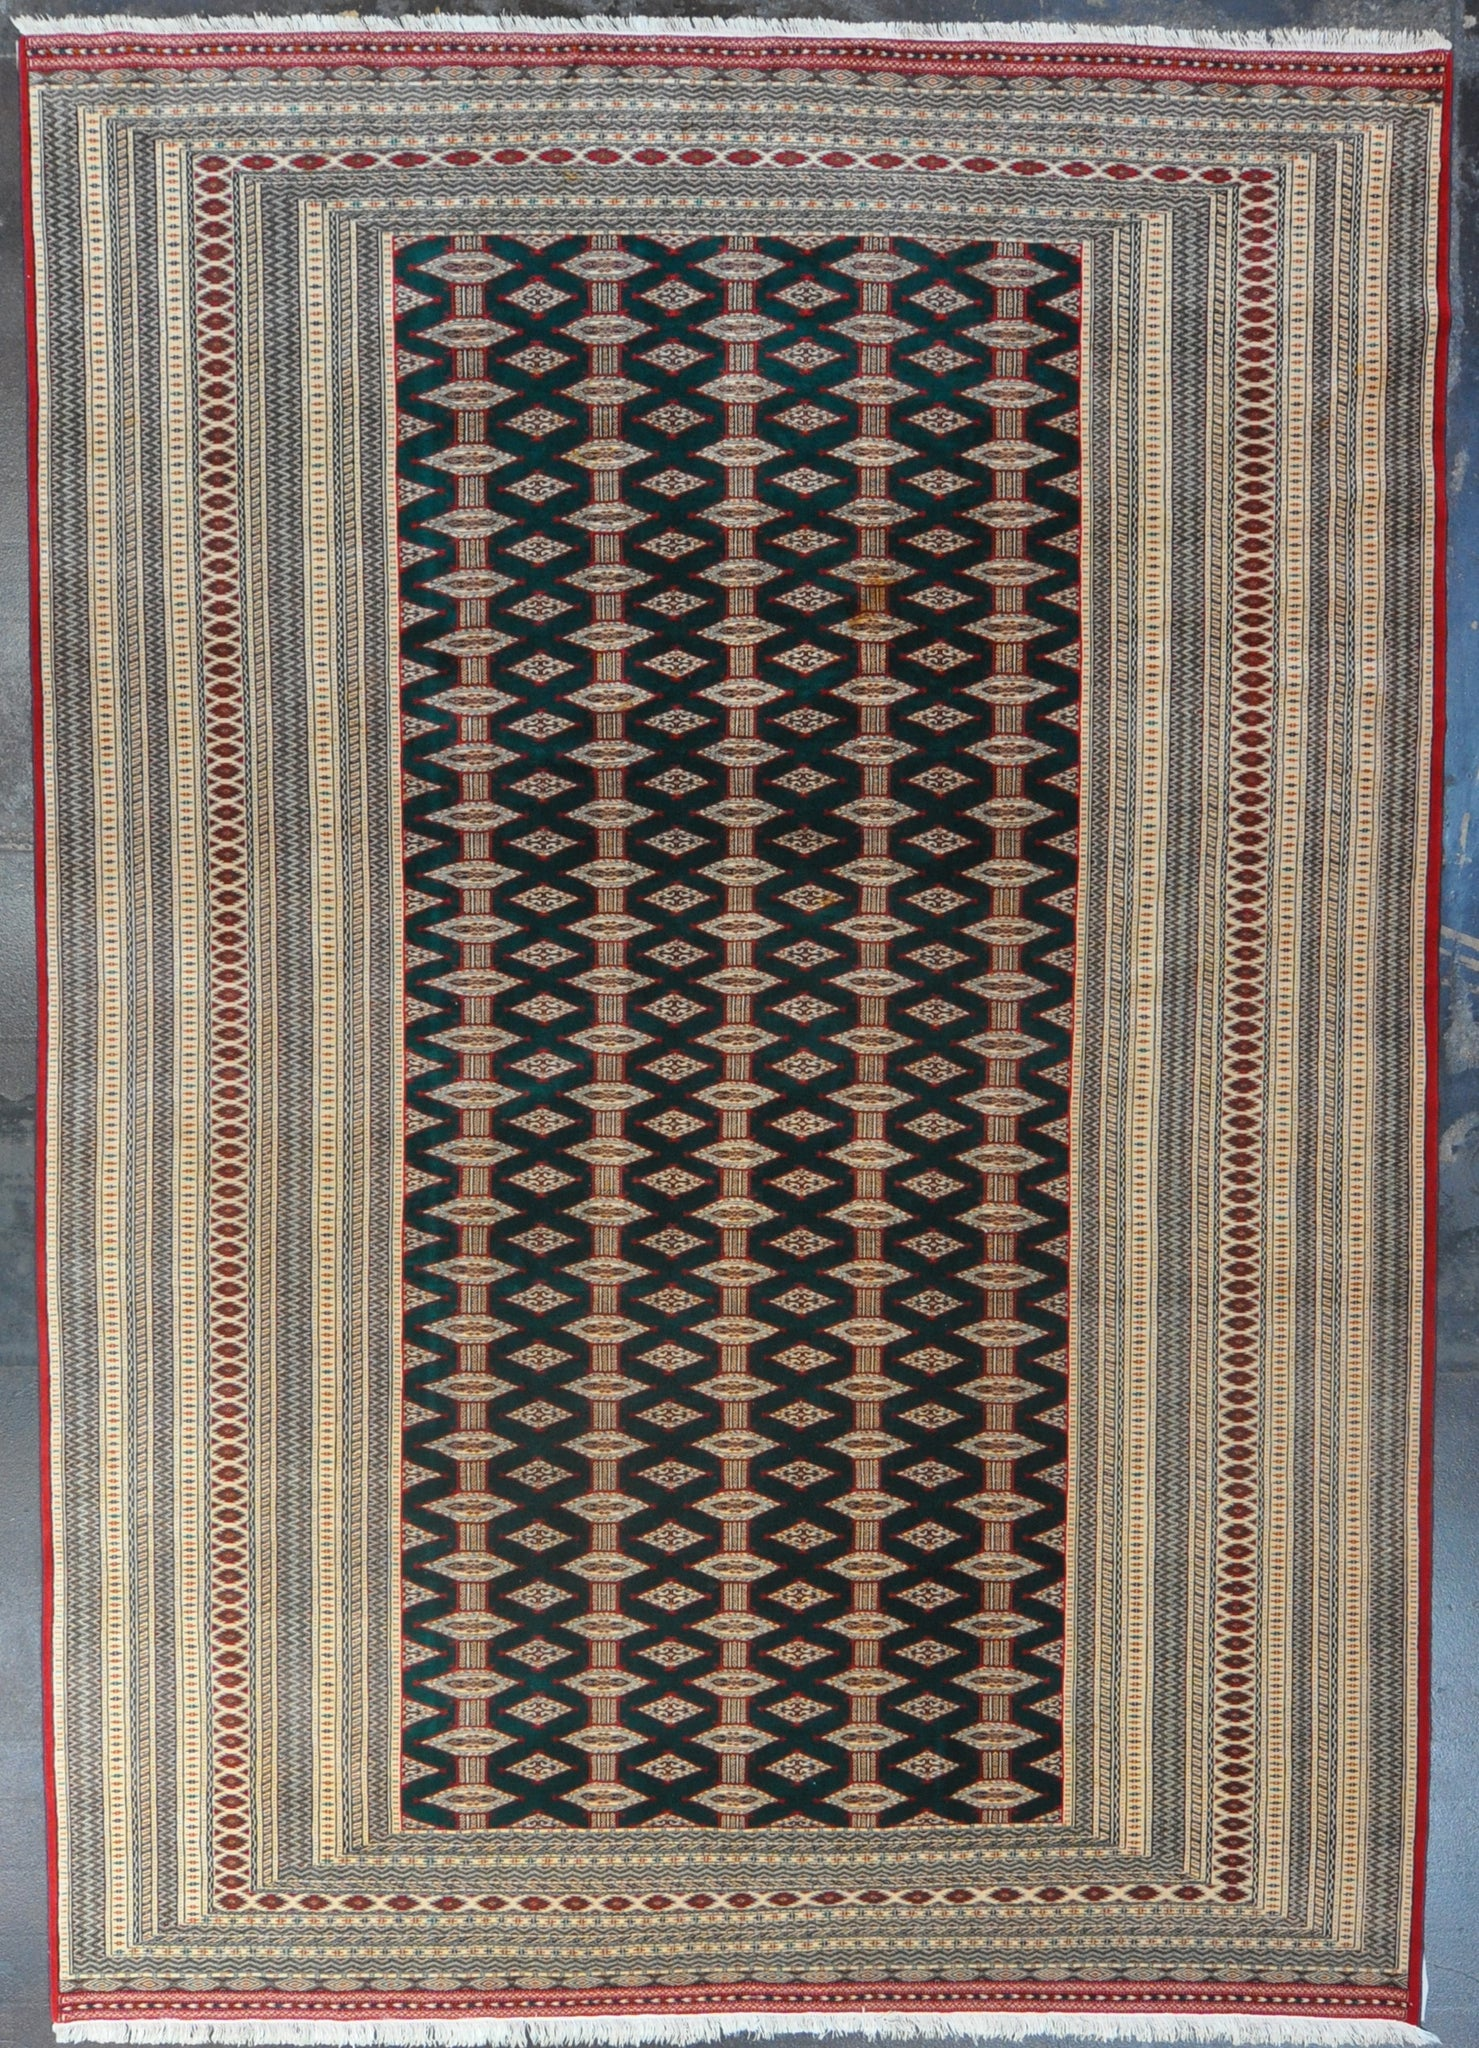 8.4x11.9 turkman wool #26605